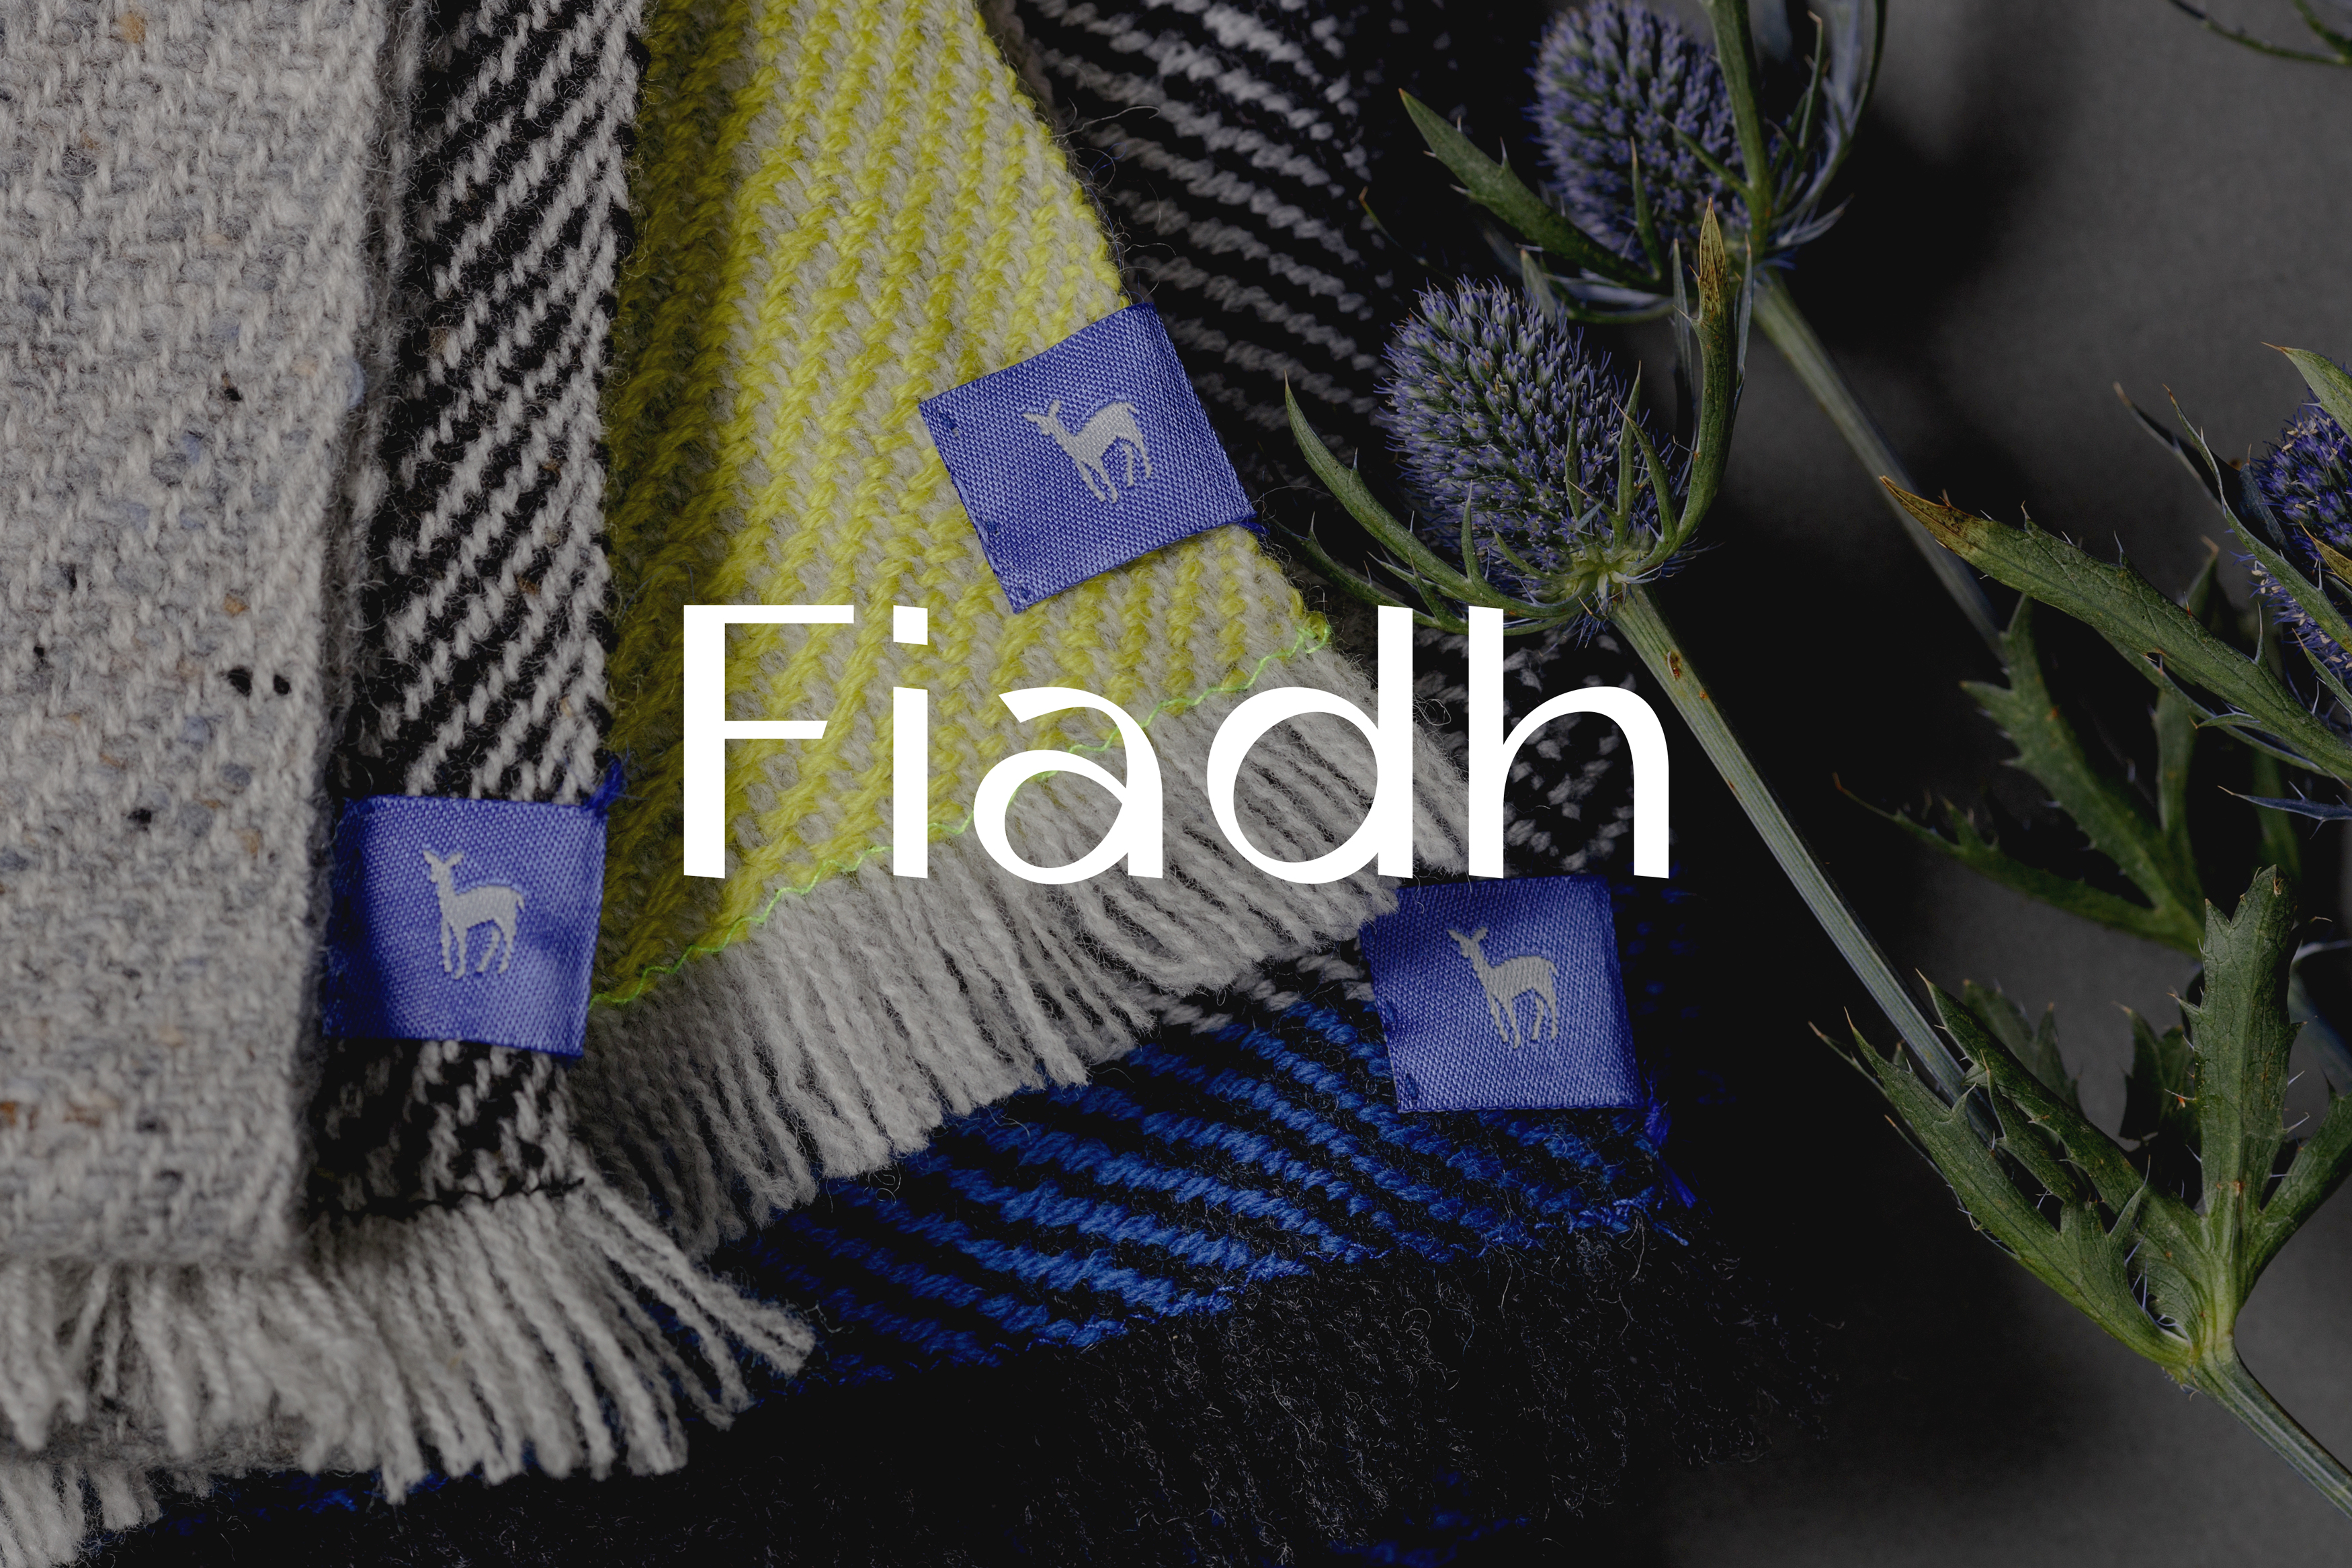 Cover image: Fiadh